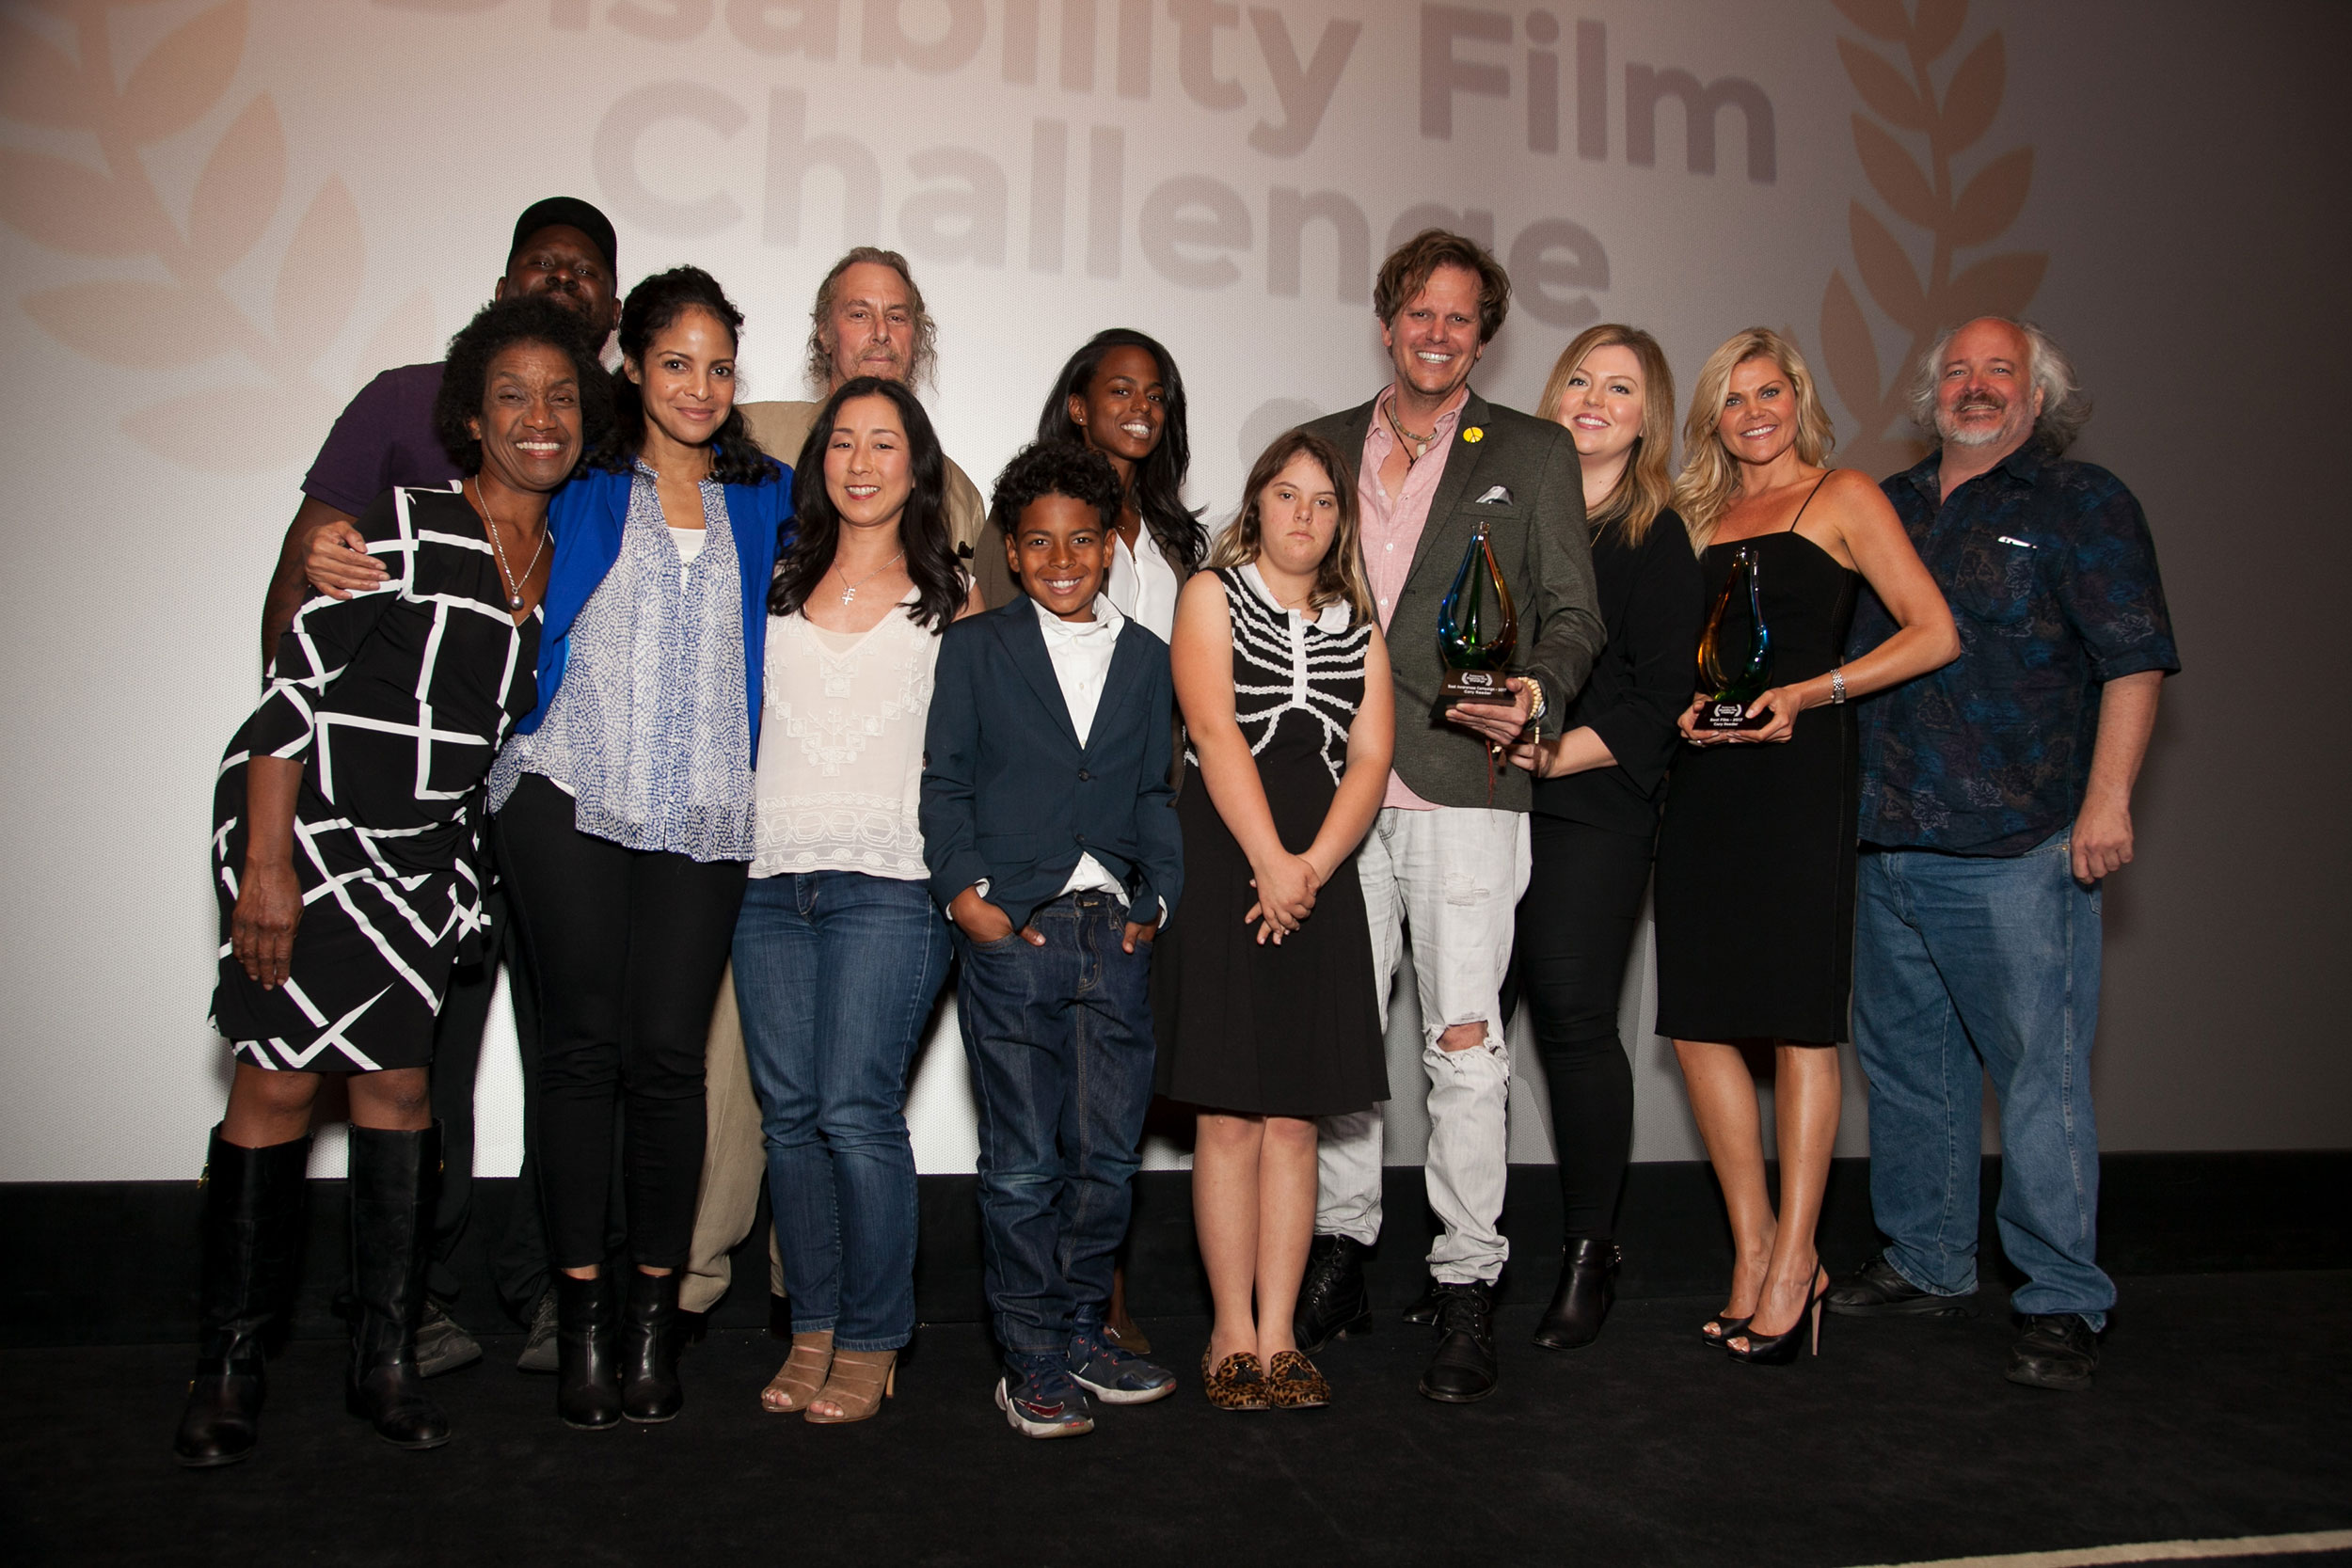 Group photo of the 2016 Disability Film Challenge winners